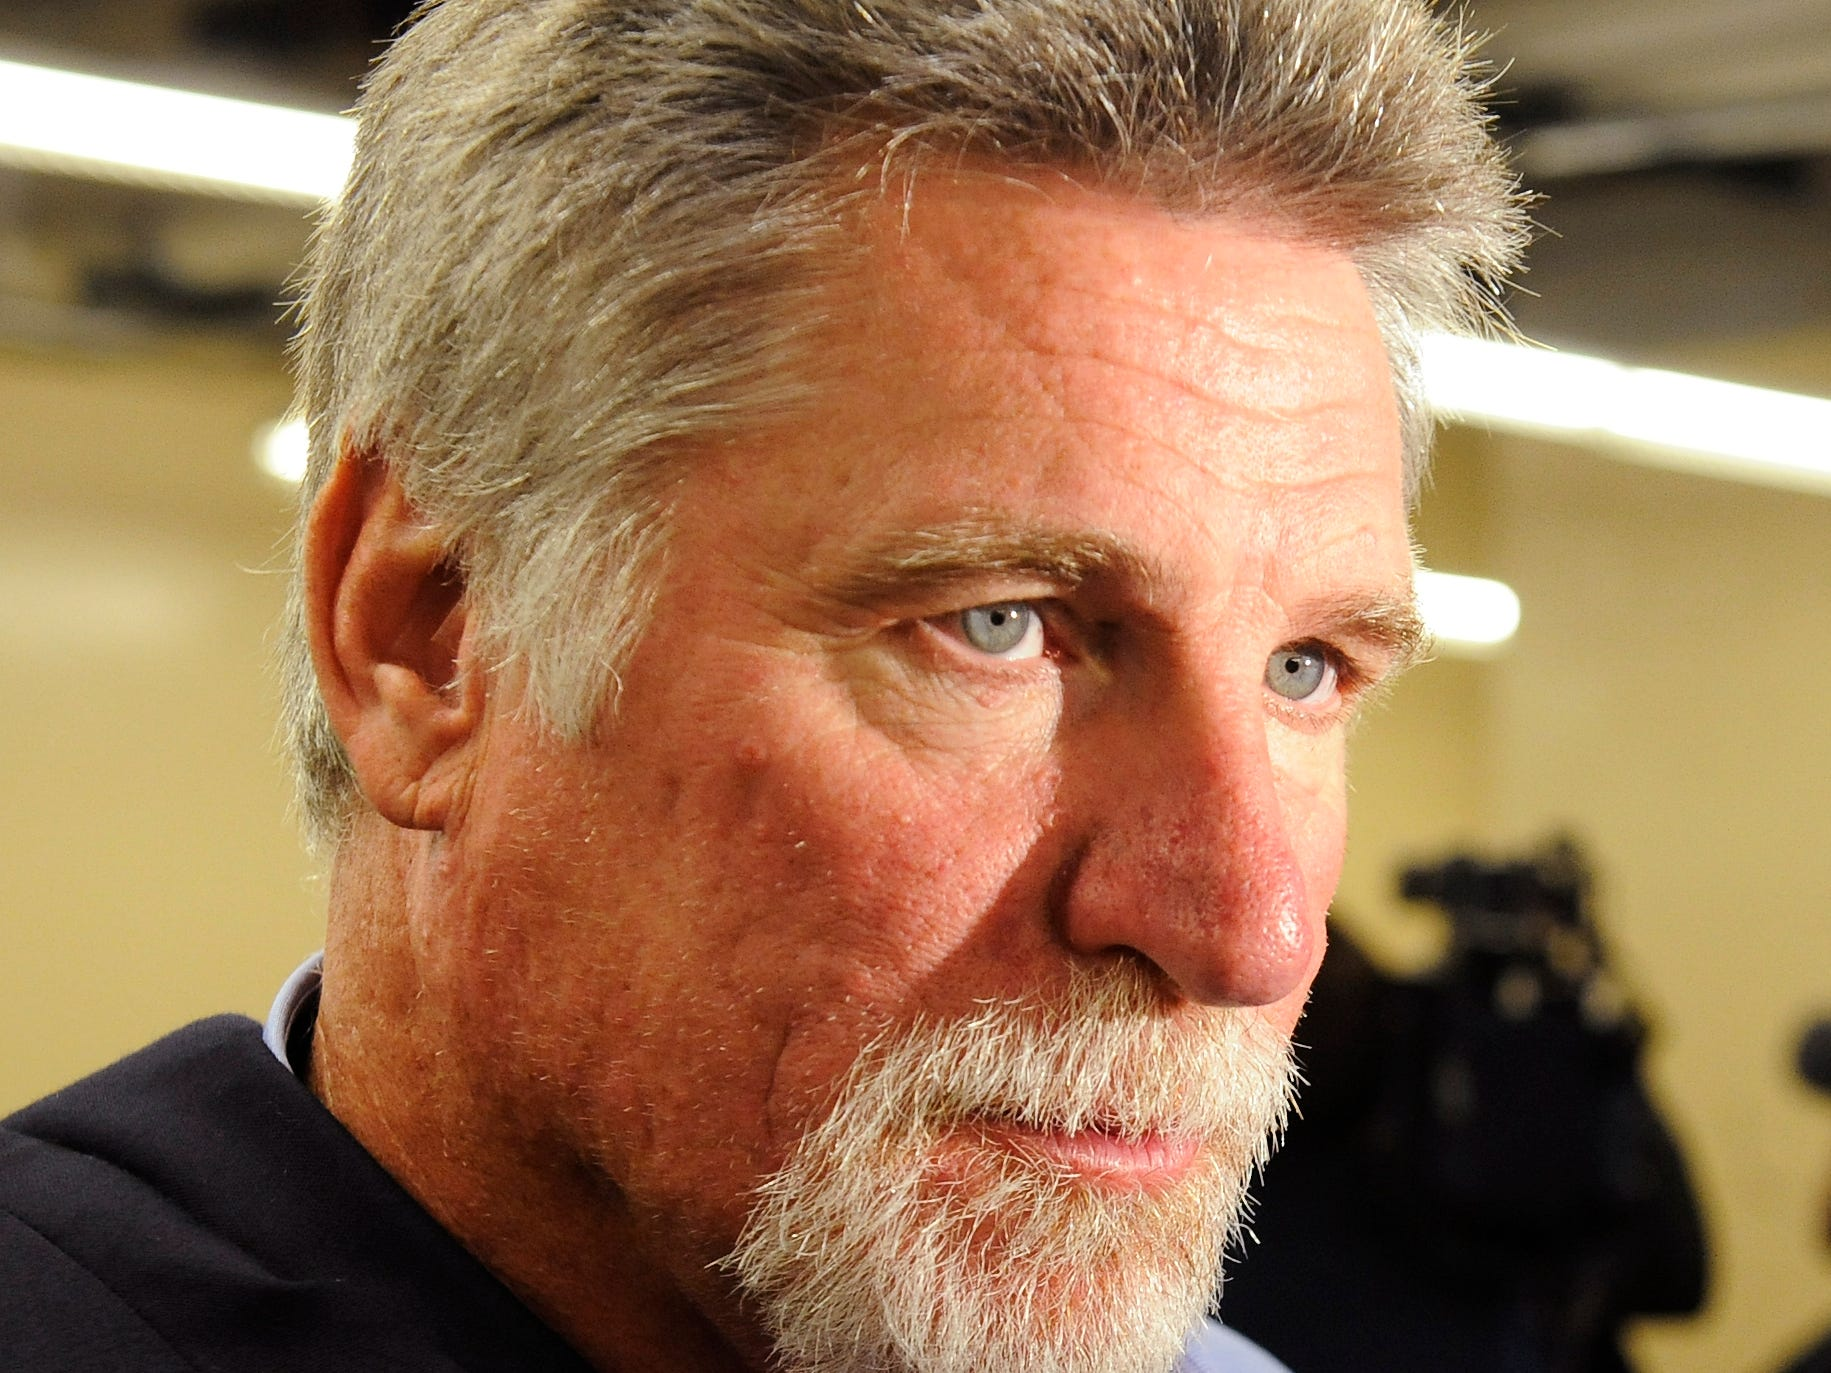 Jack Morris worked Tigers games in 2003, the last year of free TV, alongside Frank Beckmann. He would return in 2016 and 2017 to do occasional games on Fox Sports Detroit, as the Tigers went to a rotation of analysts.